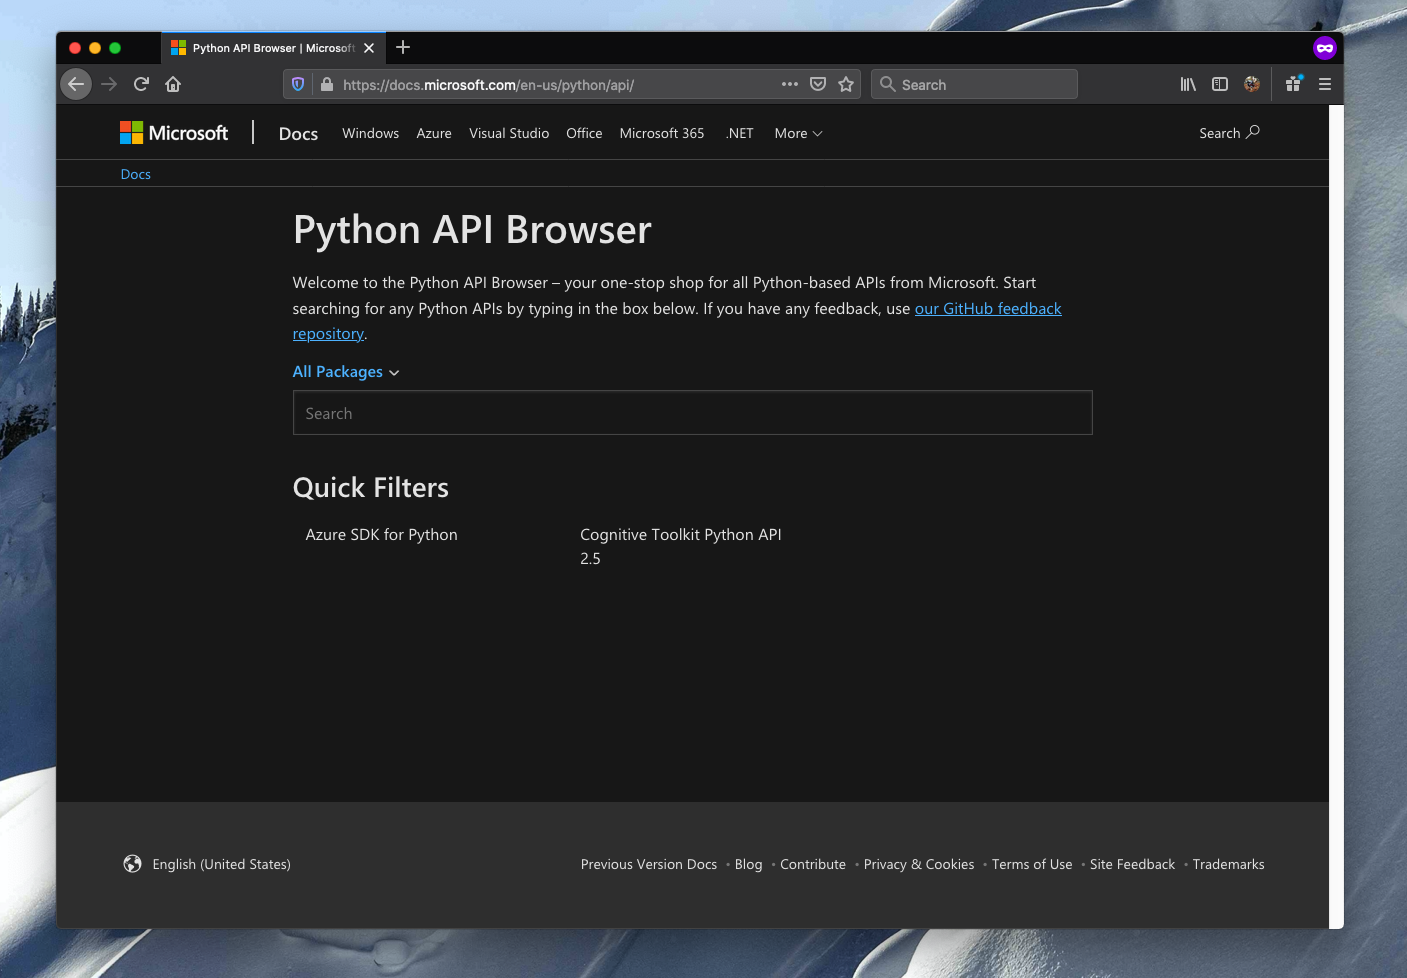 A screenshot of the Python API Browser.